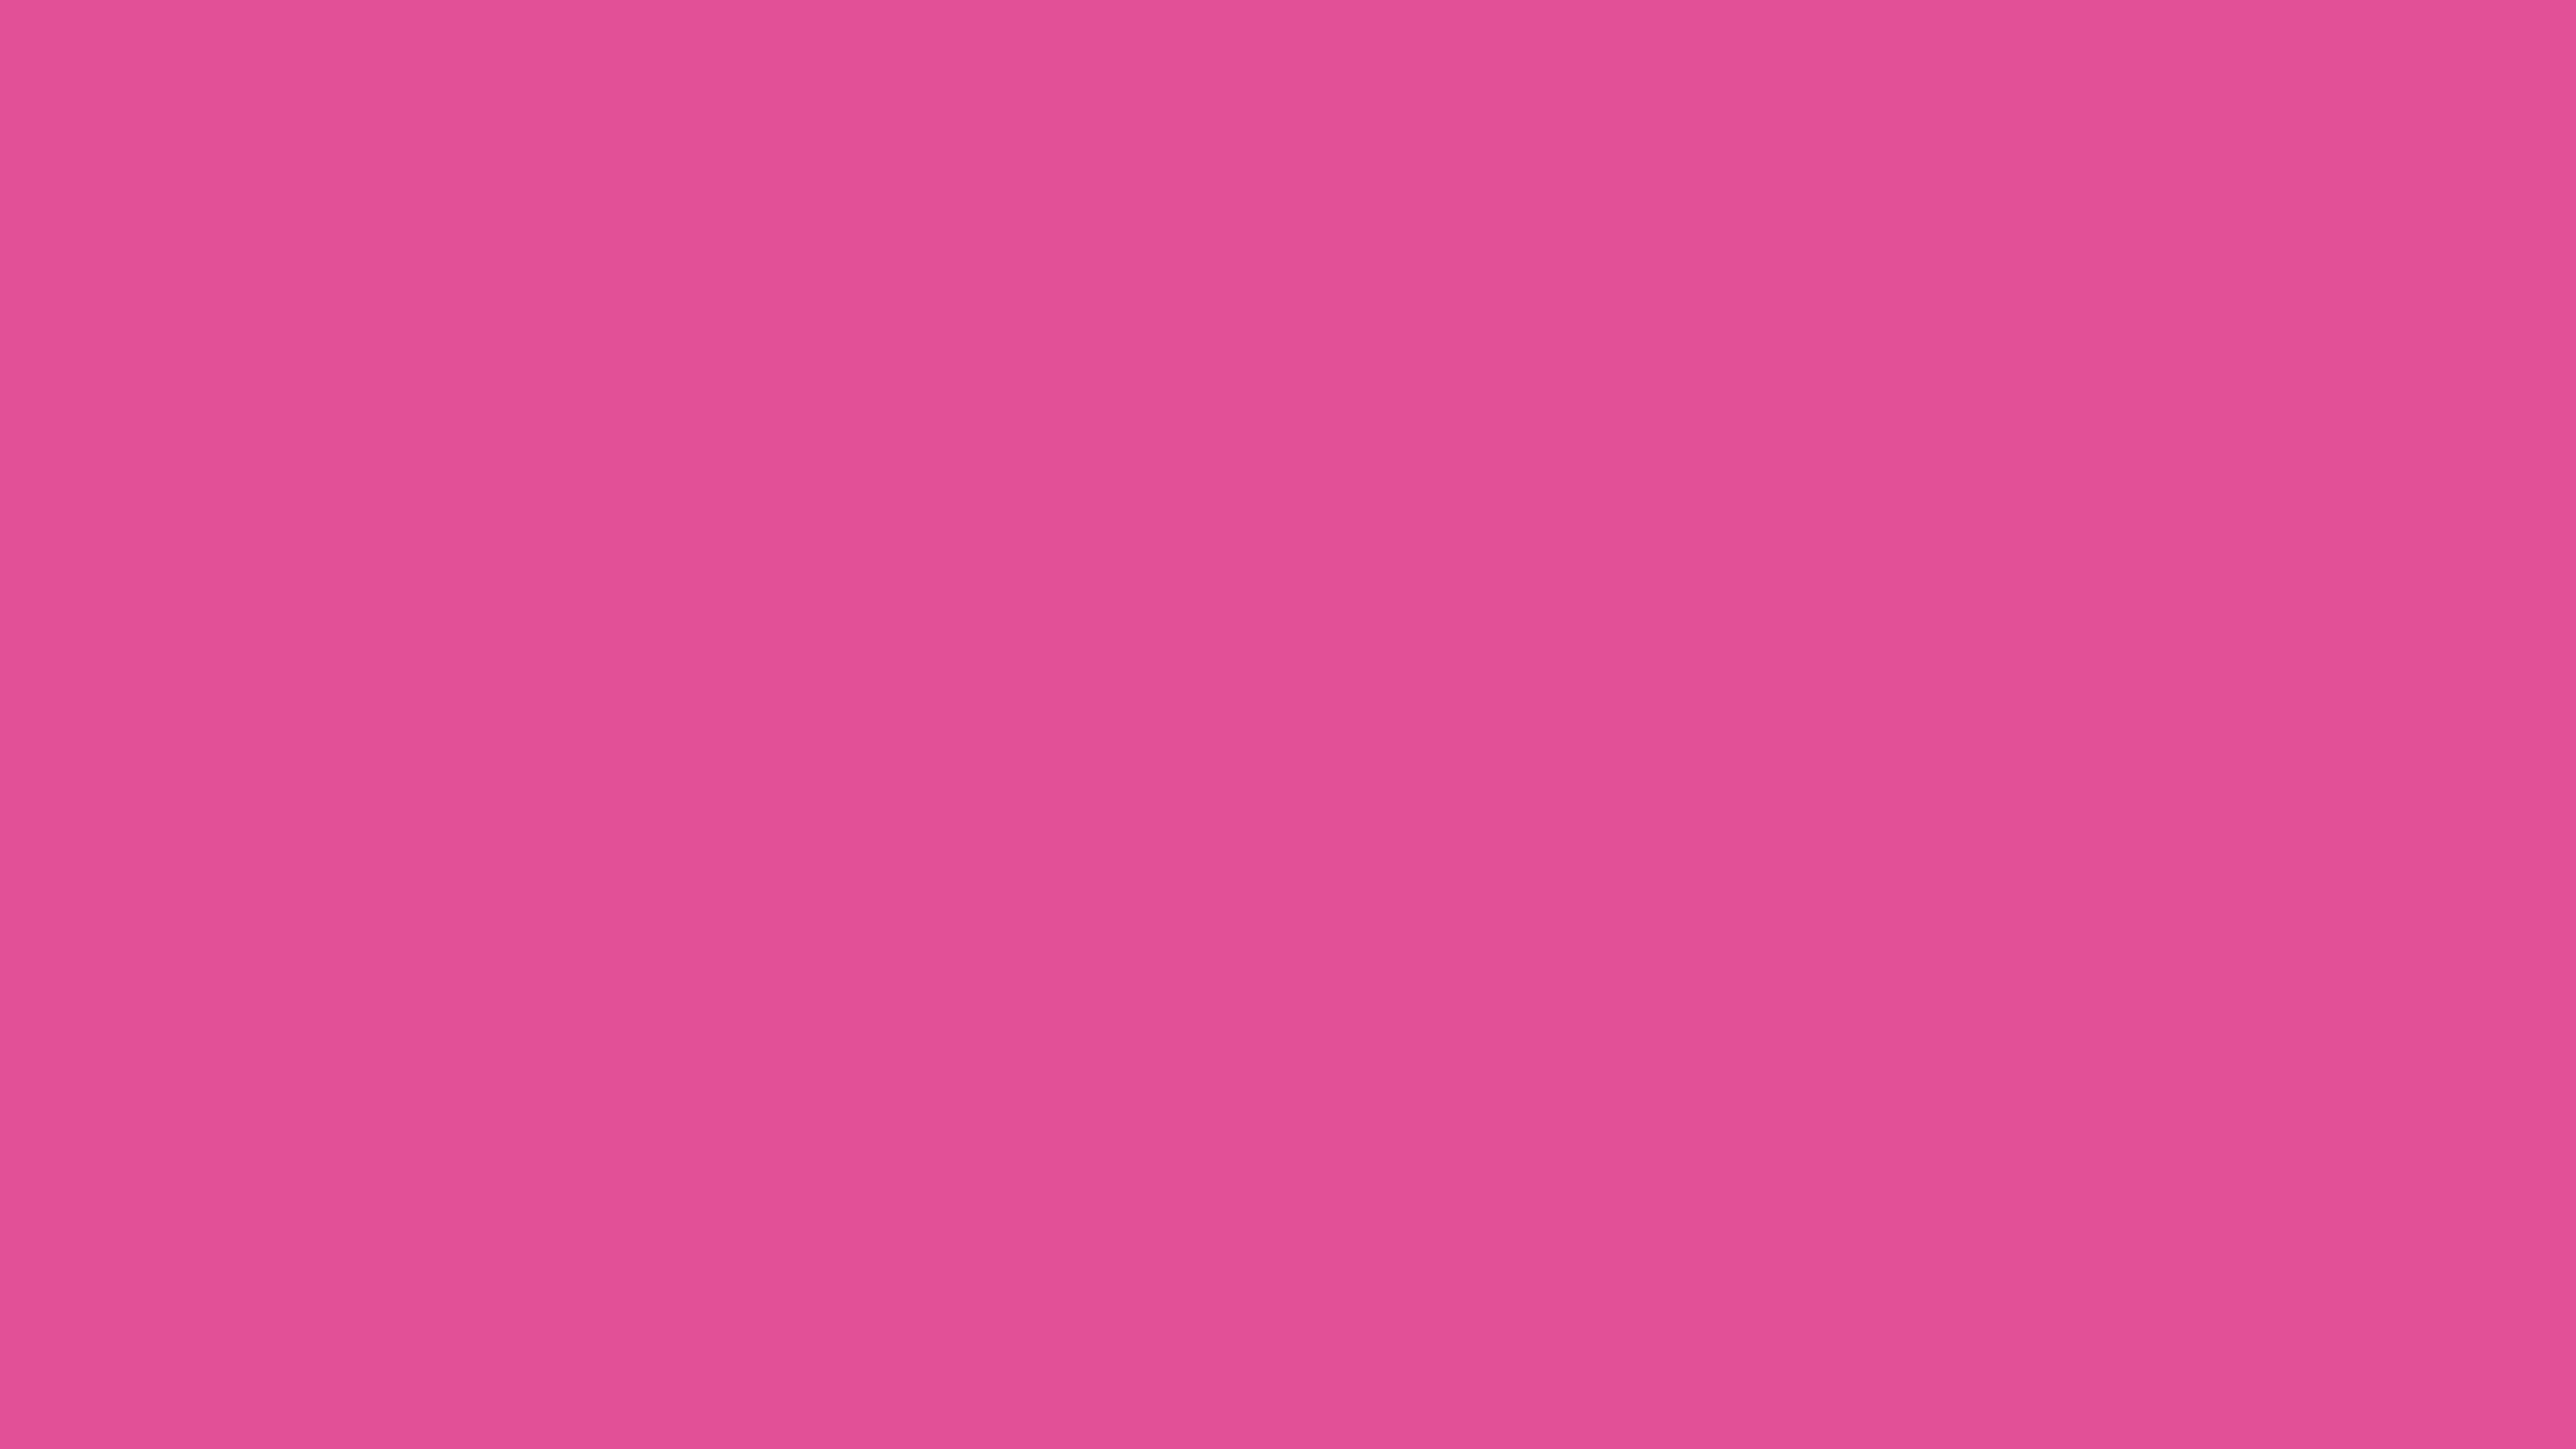 4096x2304 Raspberry Pink Solid Color Background